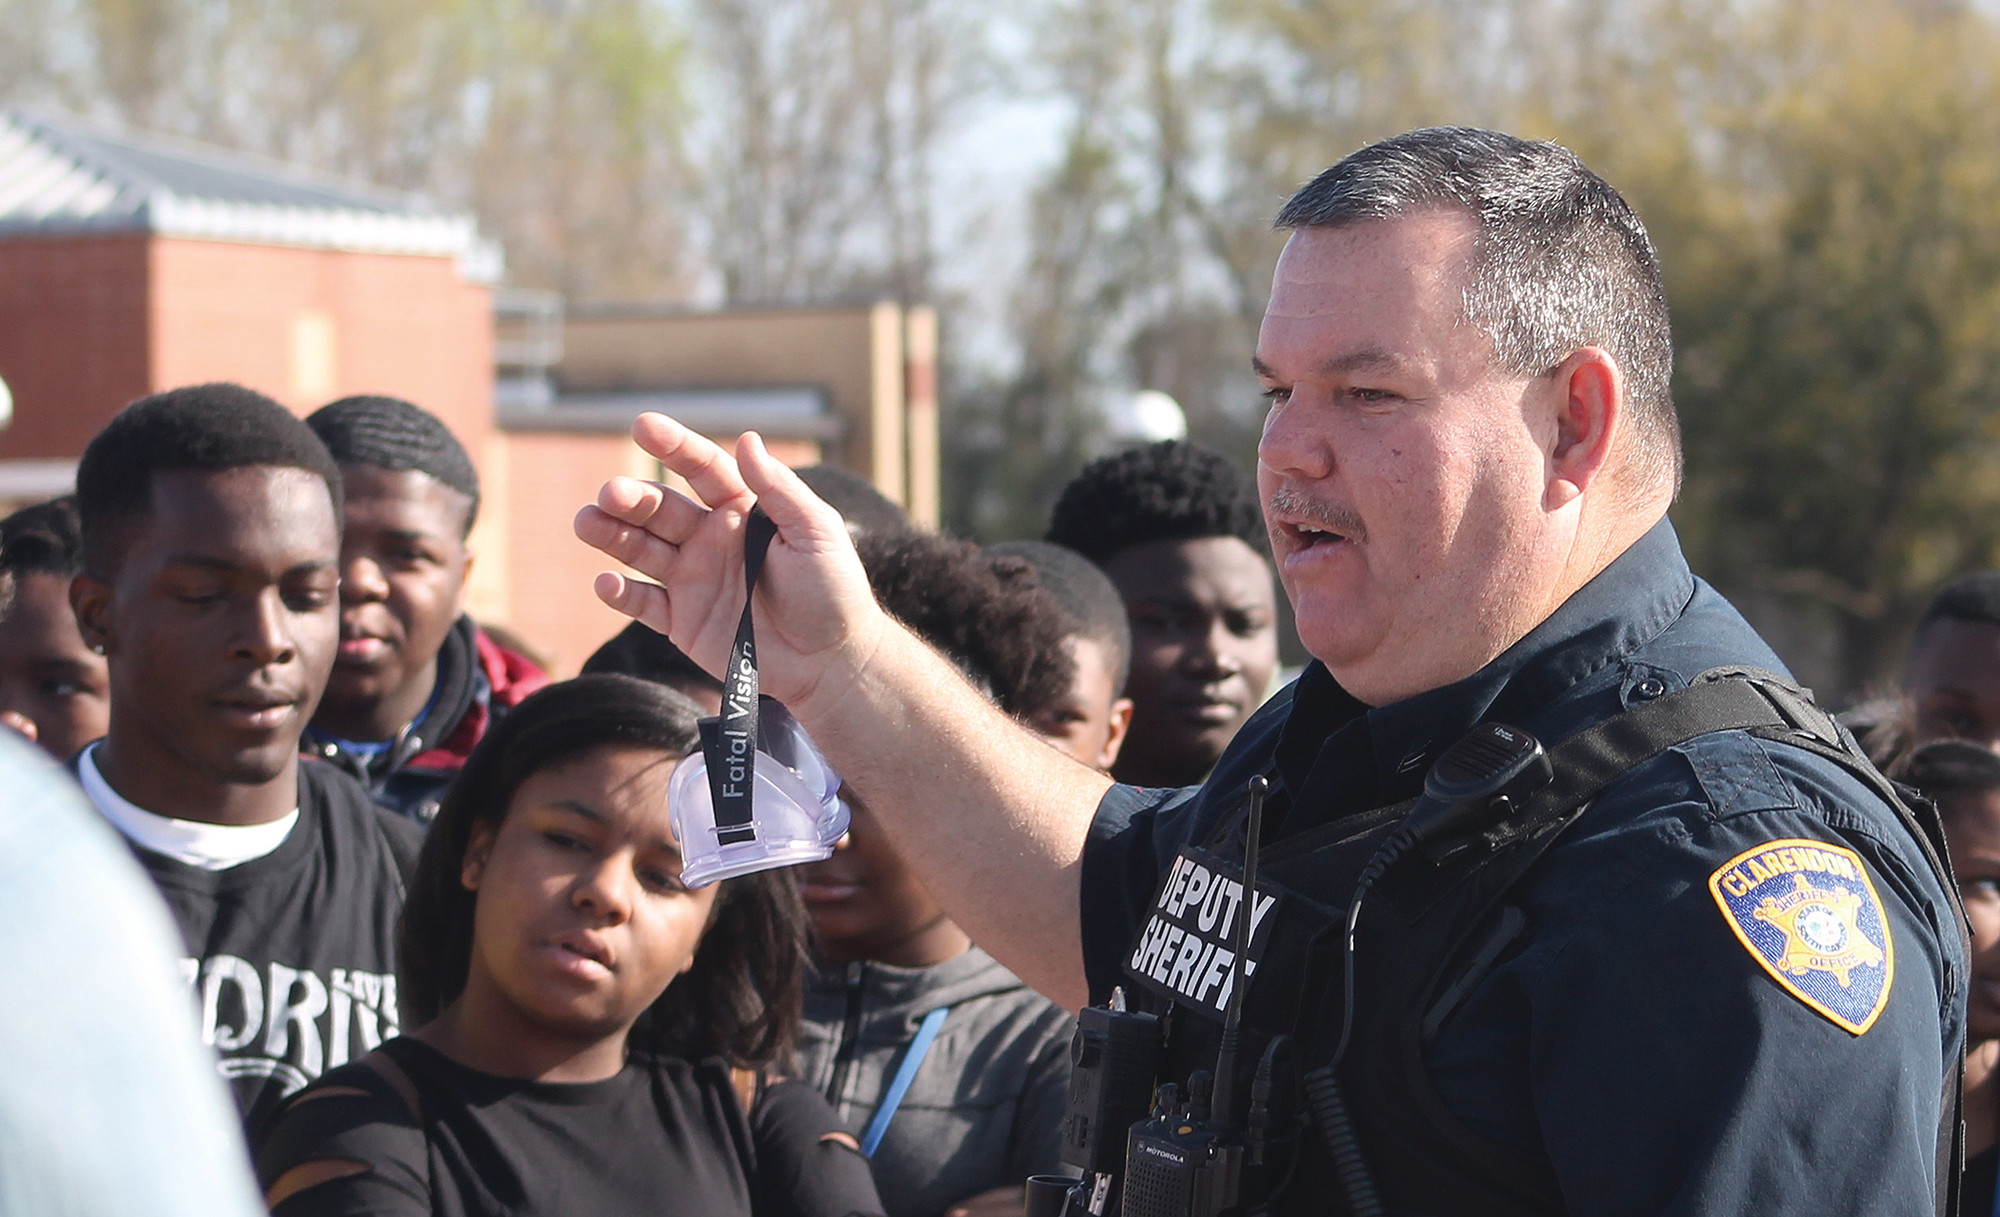 Sgt. David Floyd, head of the Traffic Division at the Clarendon County Sheriff's Office, talks to students at Scott's Branch High School on Wednesday about the importance of not driving while impaired by drinking and/or drugs.